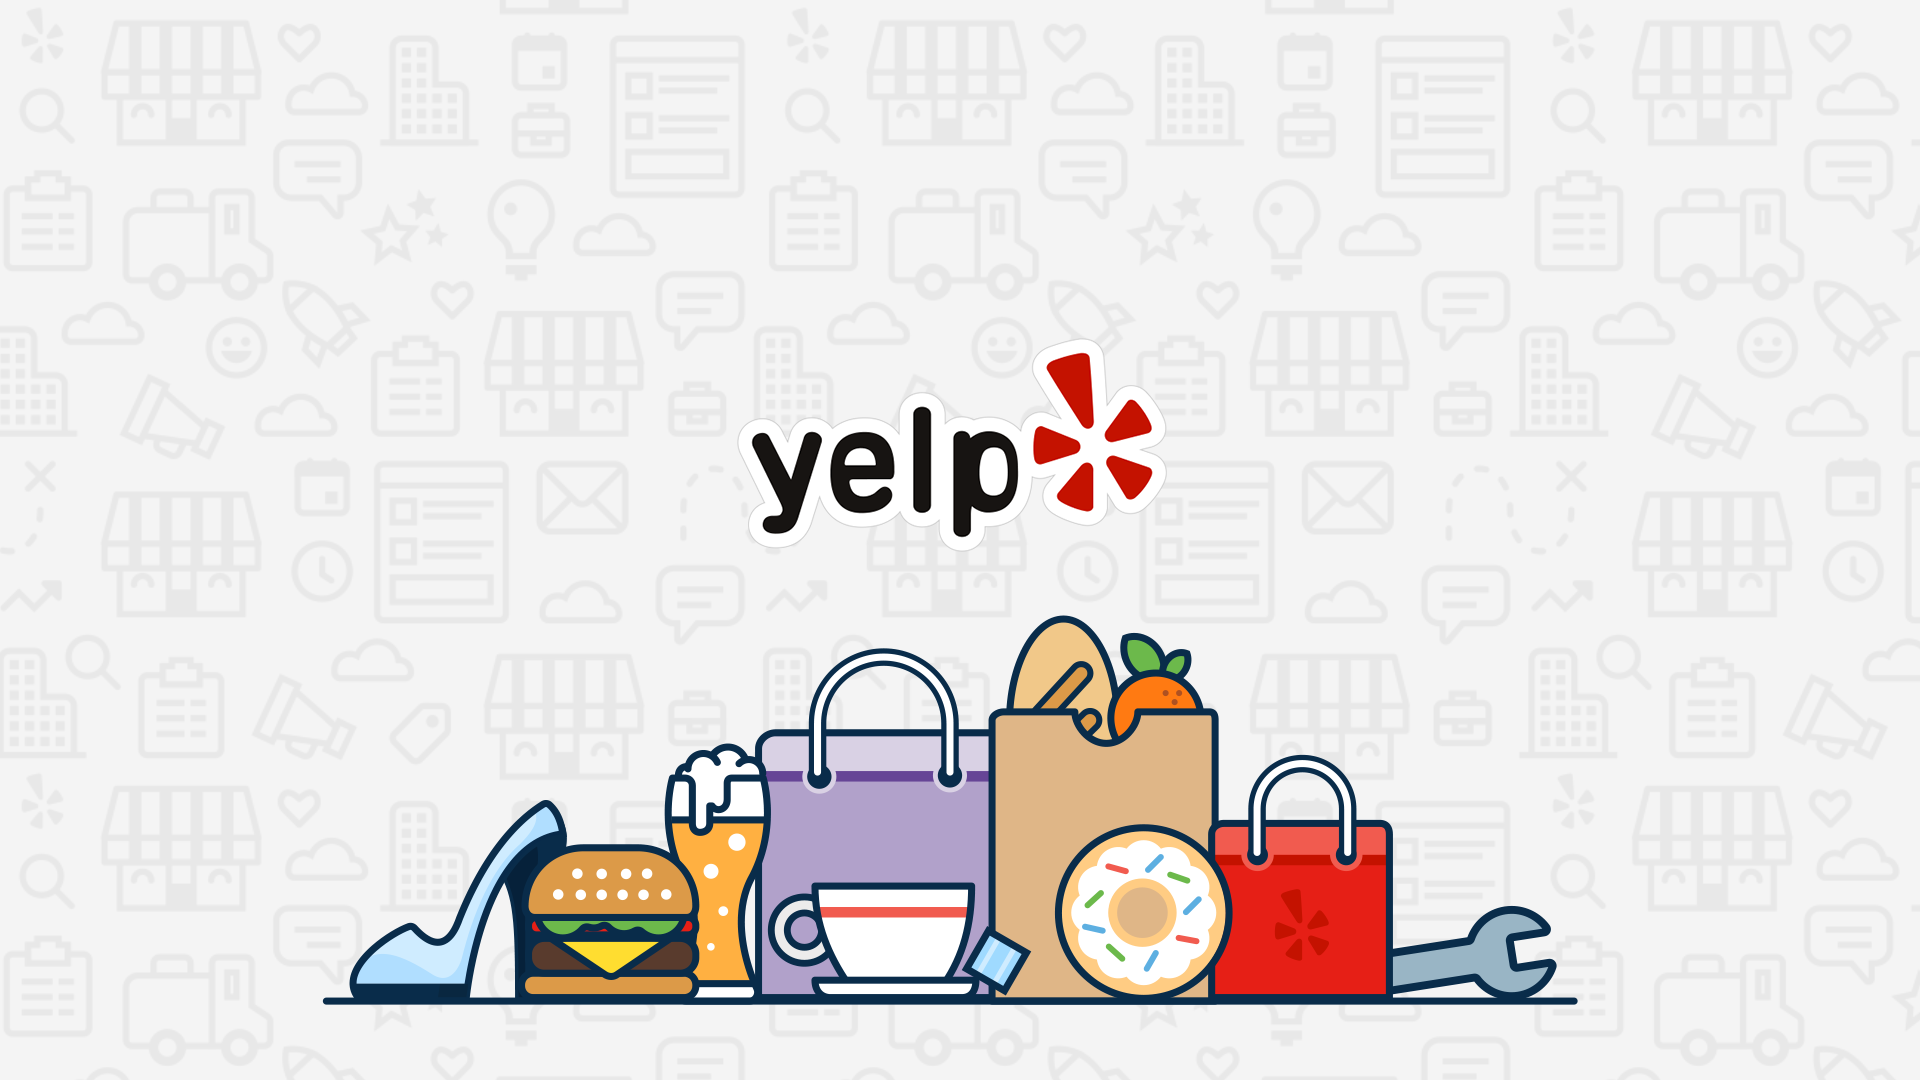 8c06c2f3c2a3 Why Yelp Stock Dropped 21.4% in November -- The Motley Fool